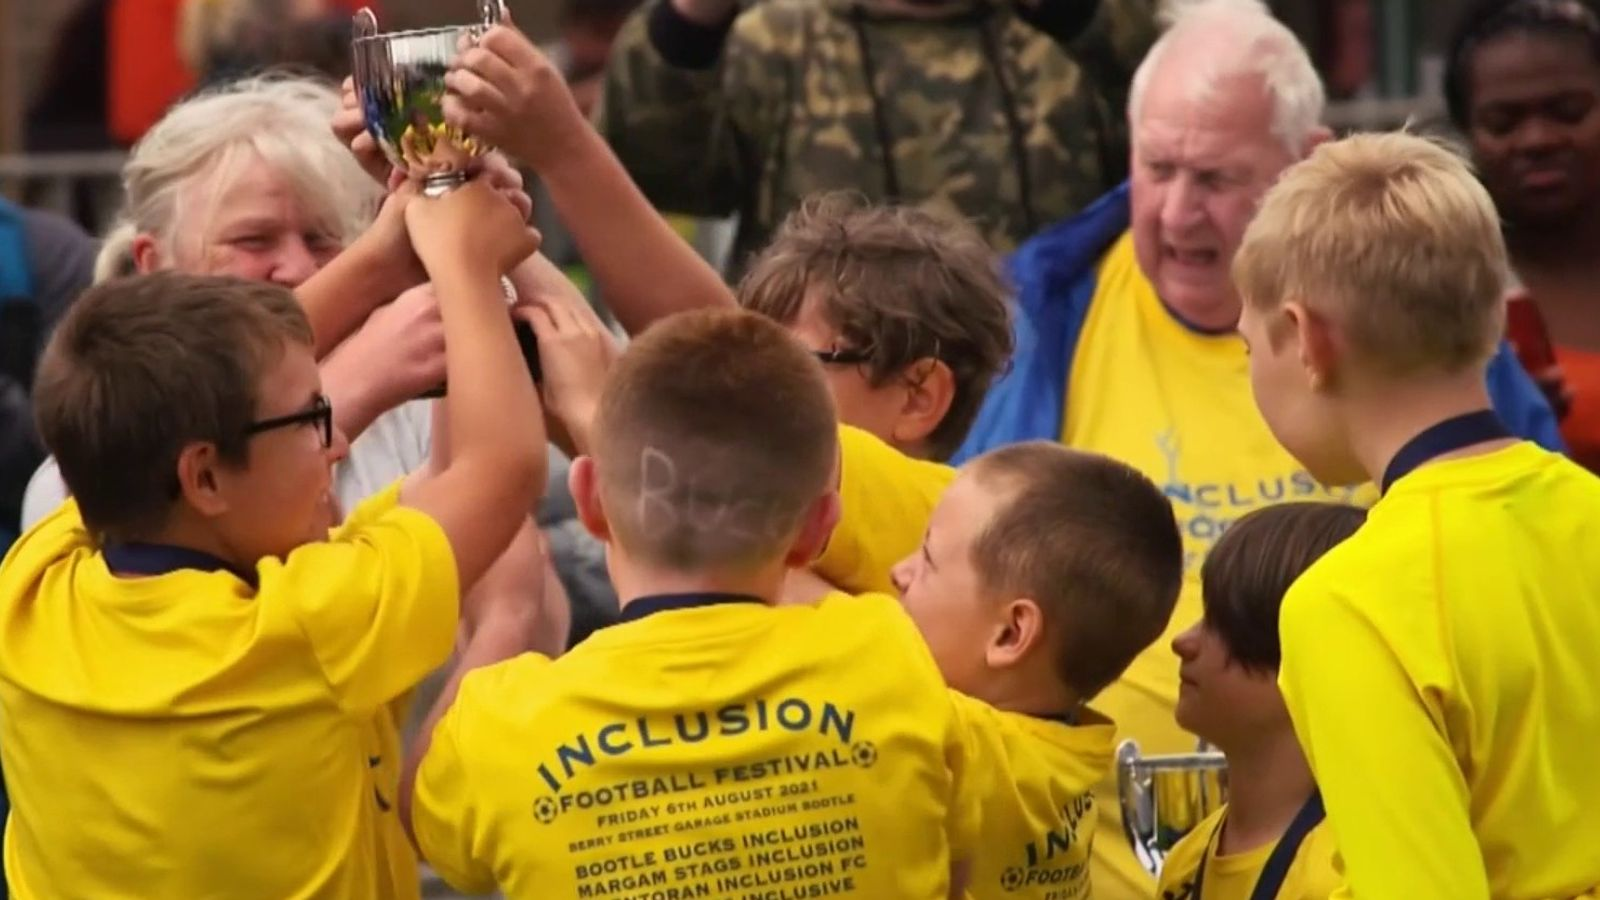 How Bootle Bucks are boosting inclusion in football in the North West and beyond